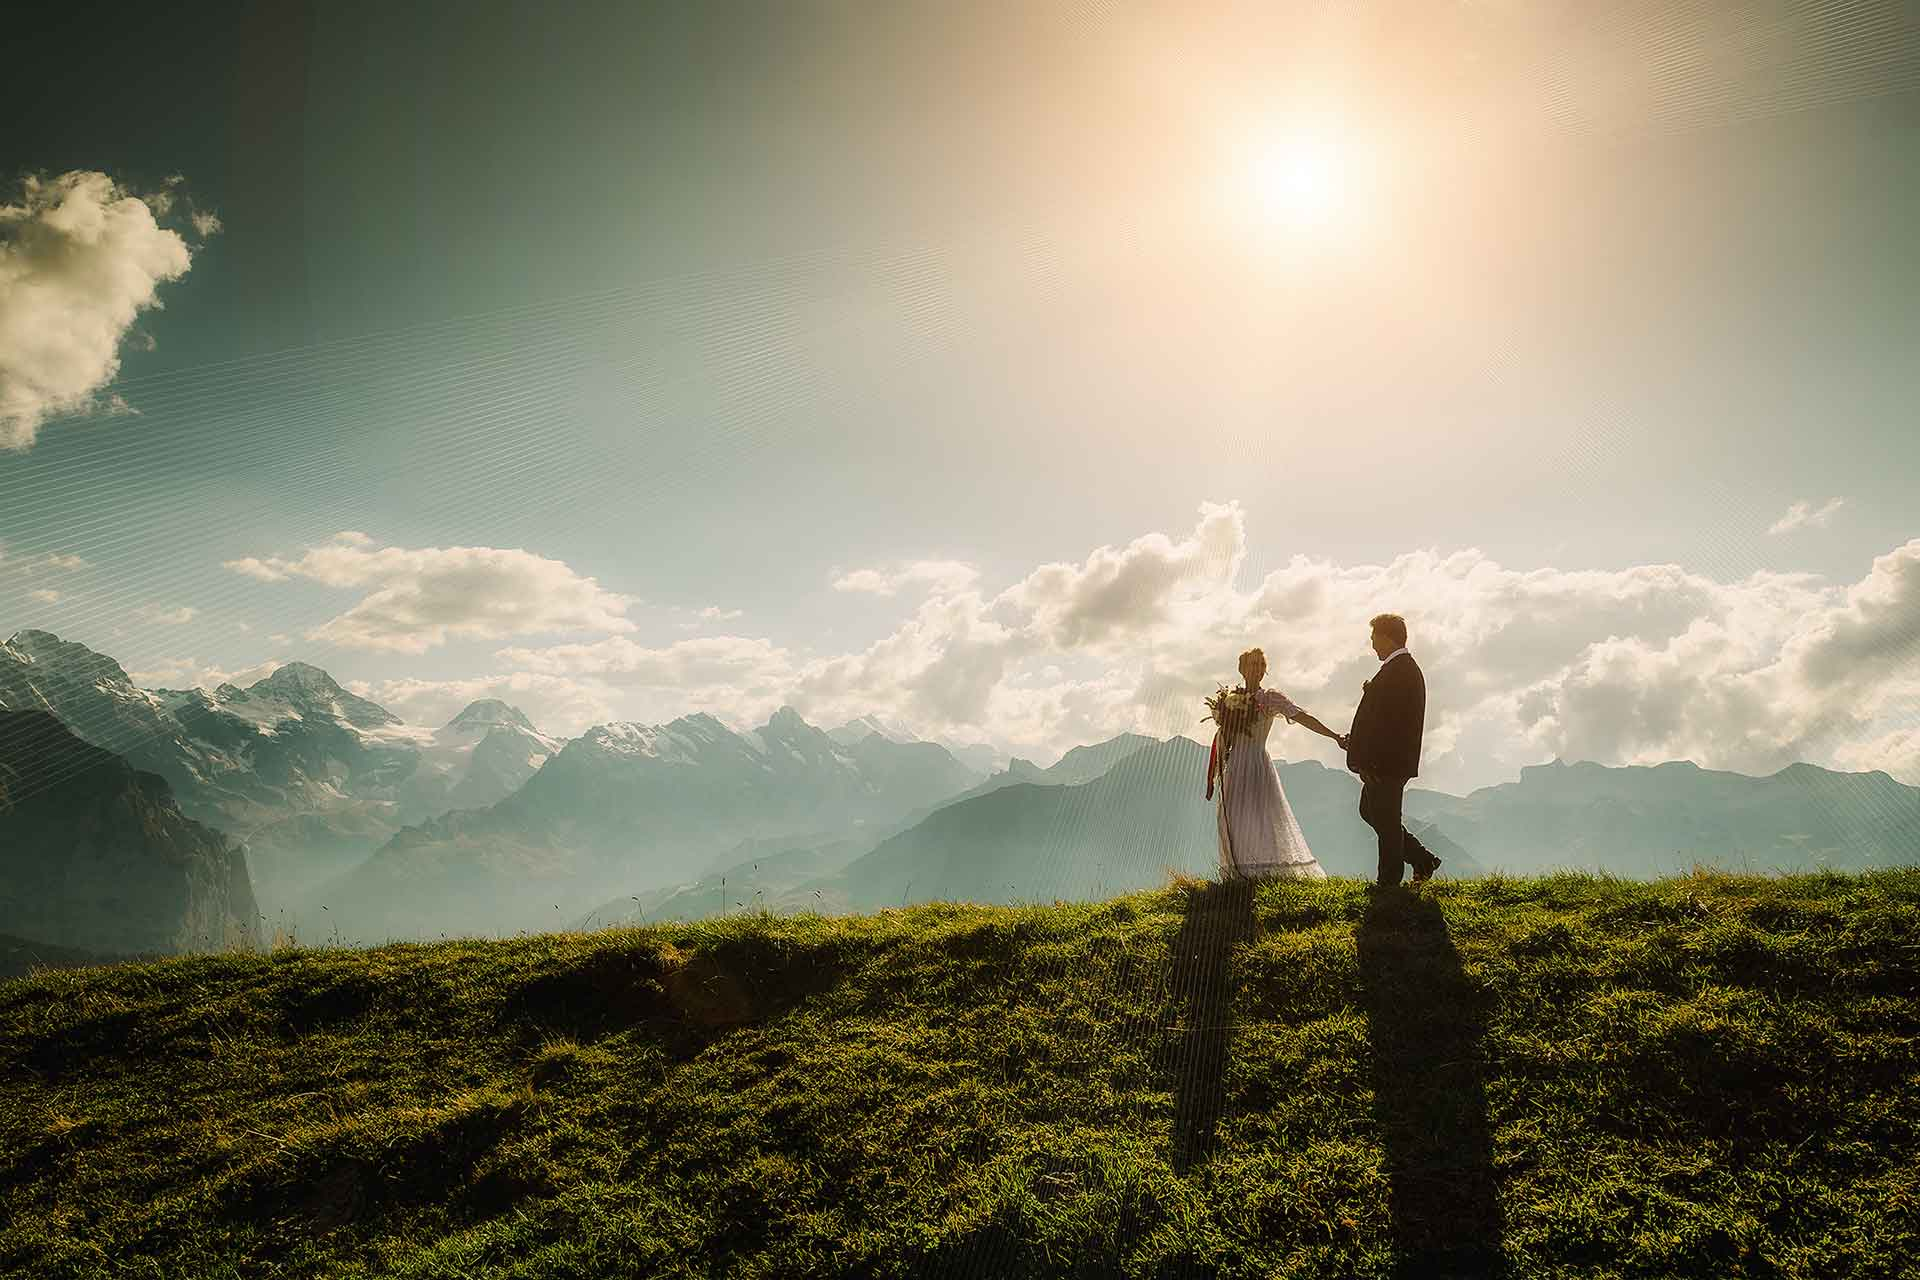 After Wedding Photo Shoot in Swiss Alps